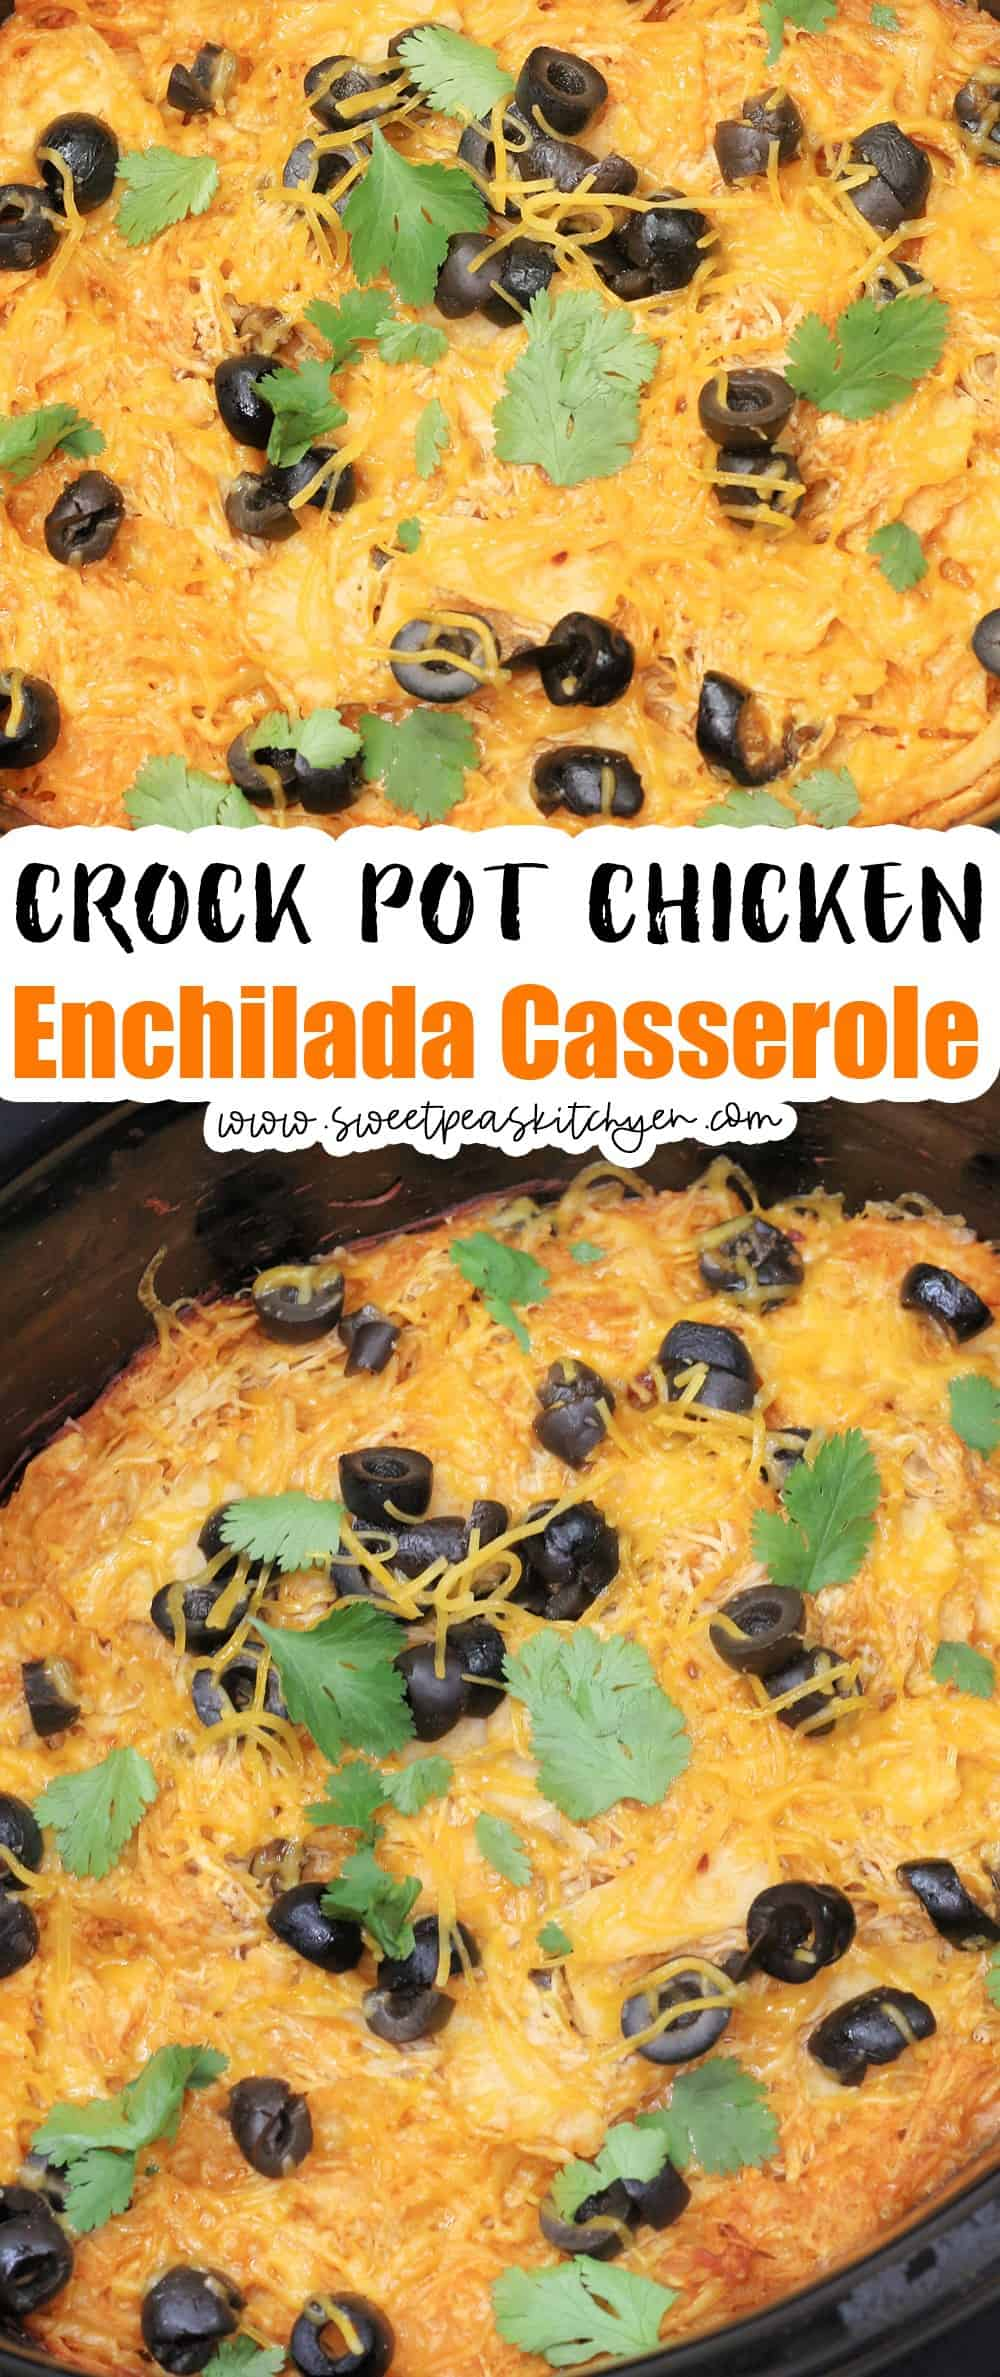 Crock Pot Chicken Enchilada Casserole